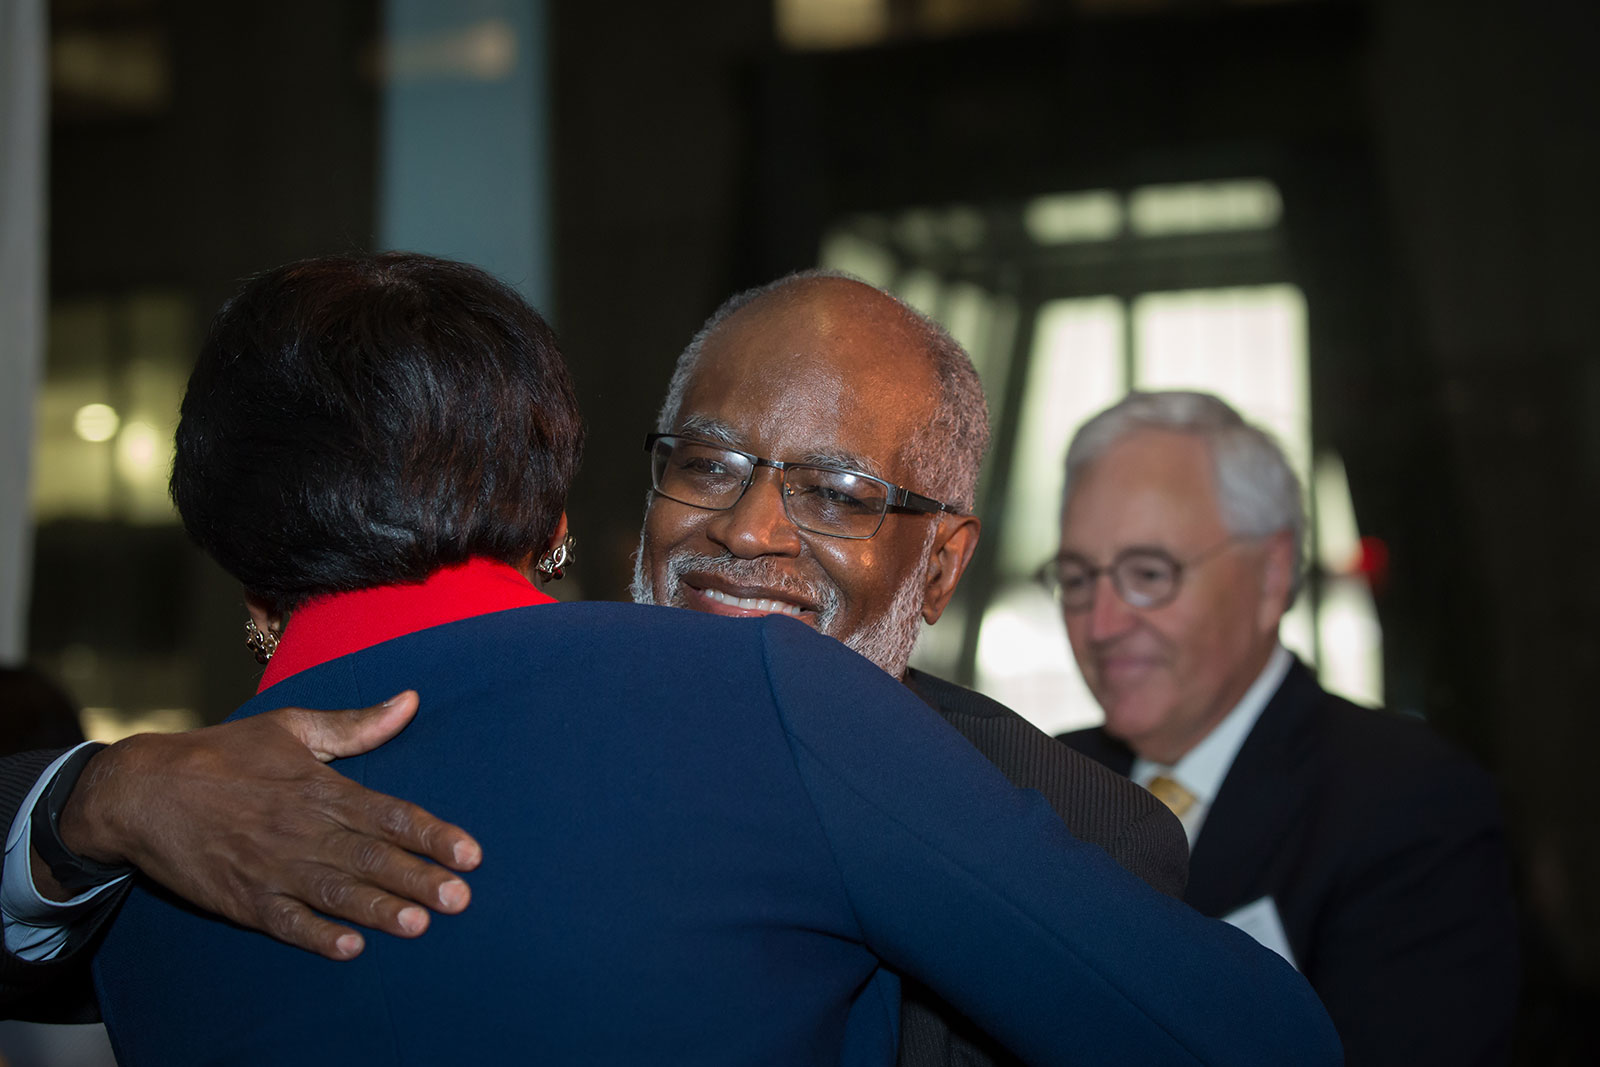 Lisa Davis and Bert Ifill embrace at the Page Center Awards, as past honoree Dick Martin looks on.